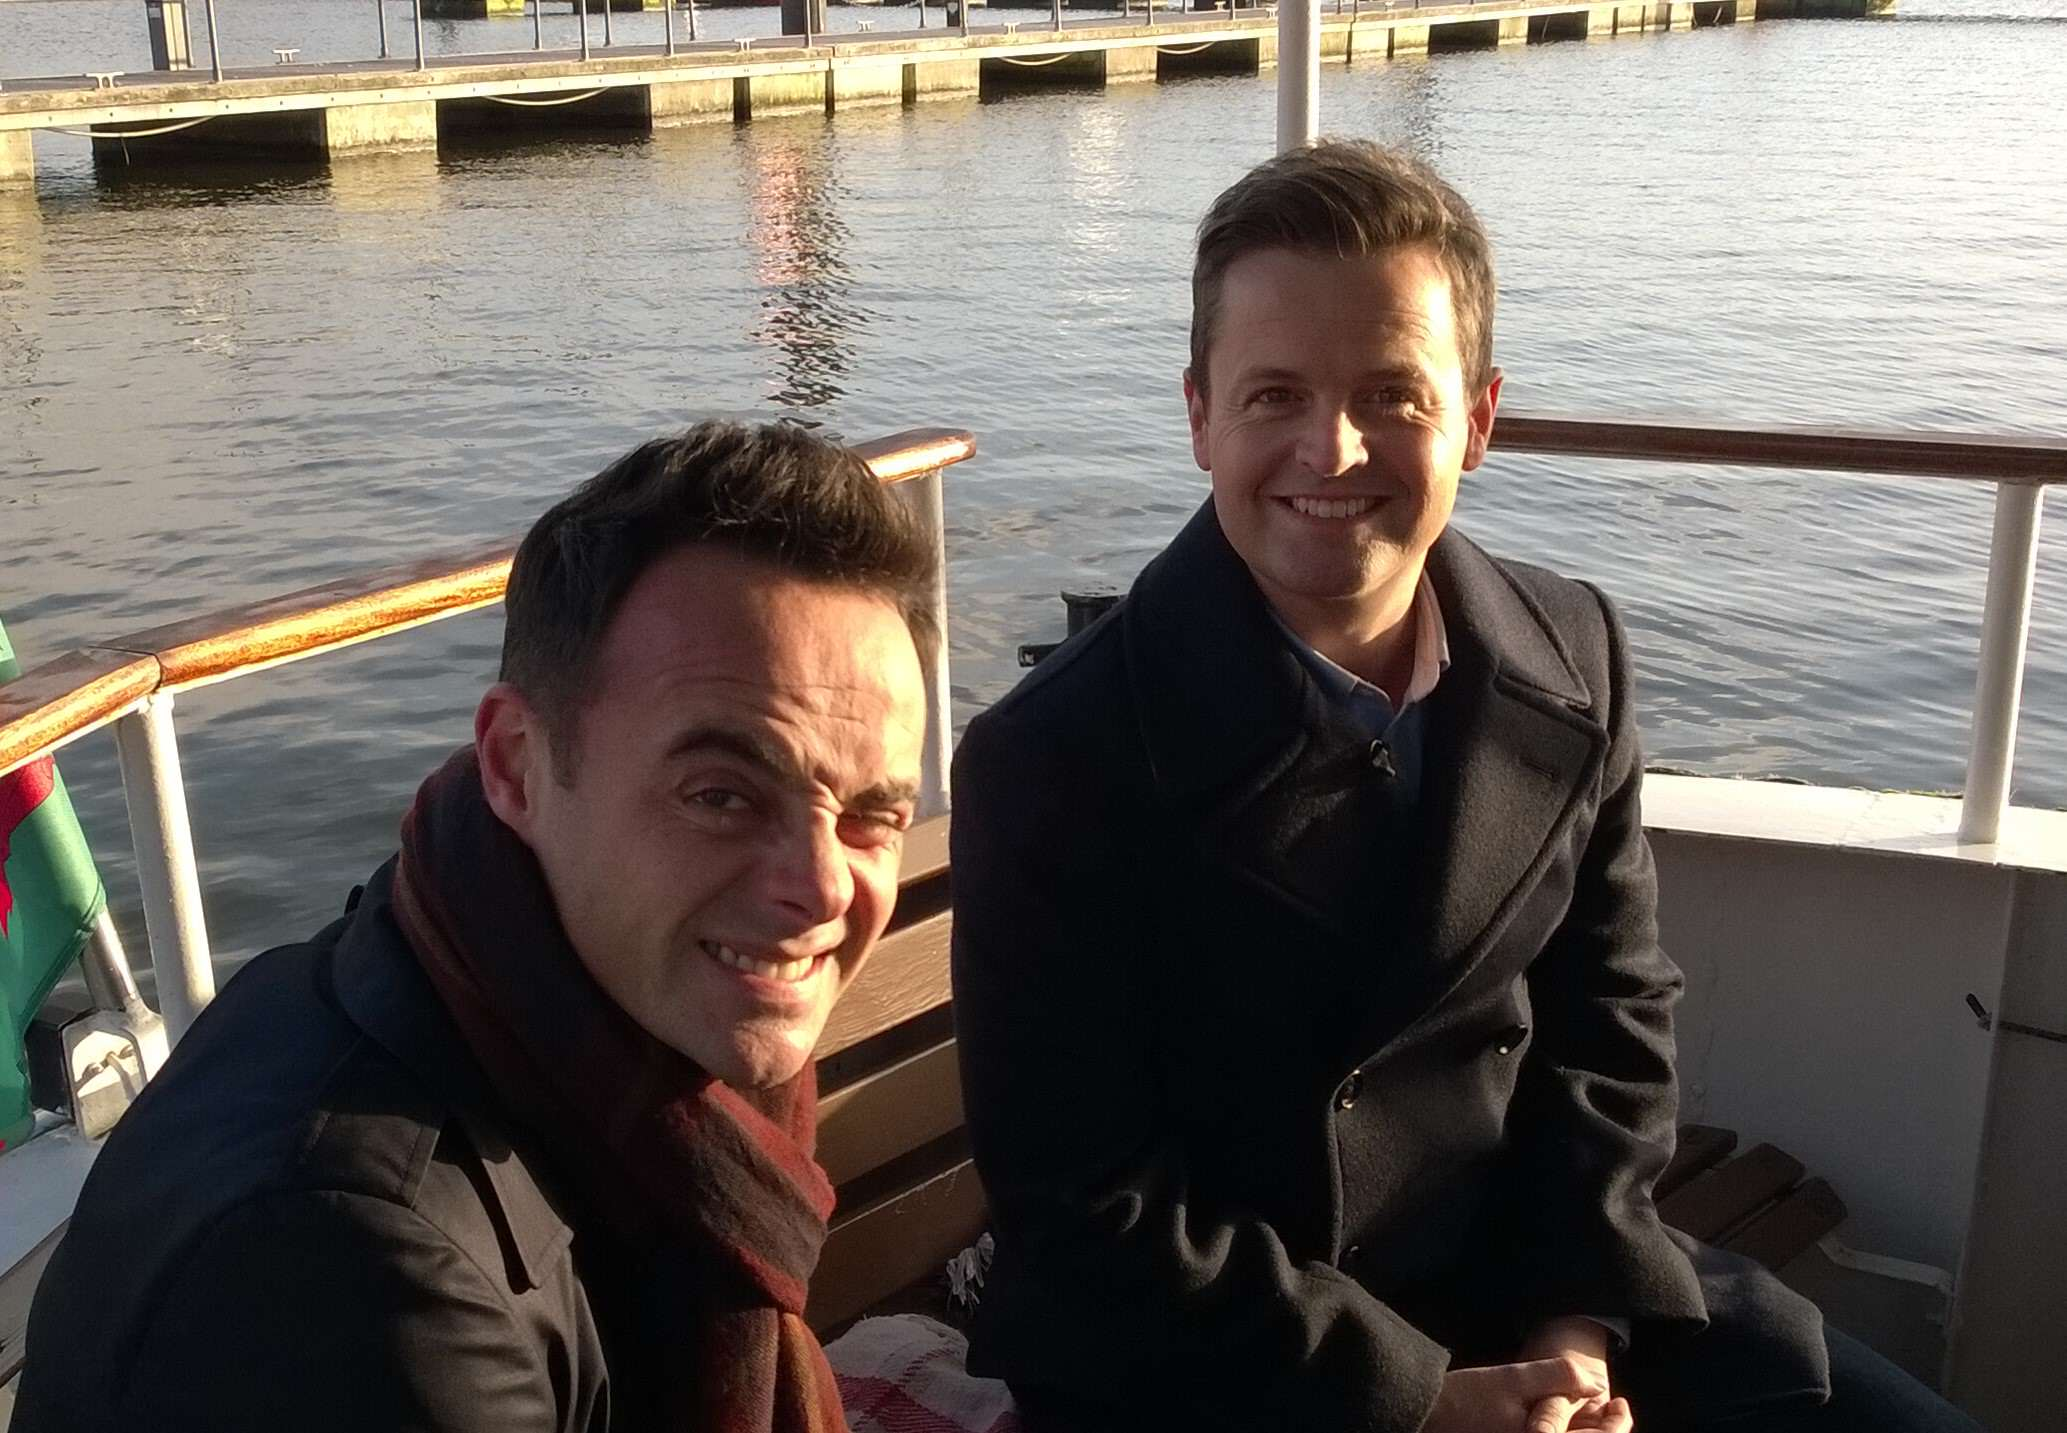 Ant and Dec in Cardiff Bay Ant And Decs Saturday Night Takeaway Gets A Lot Of Random Complaints